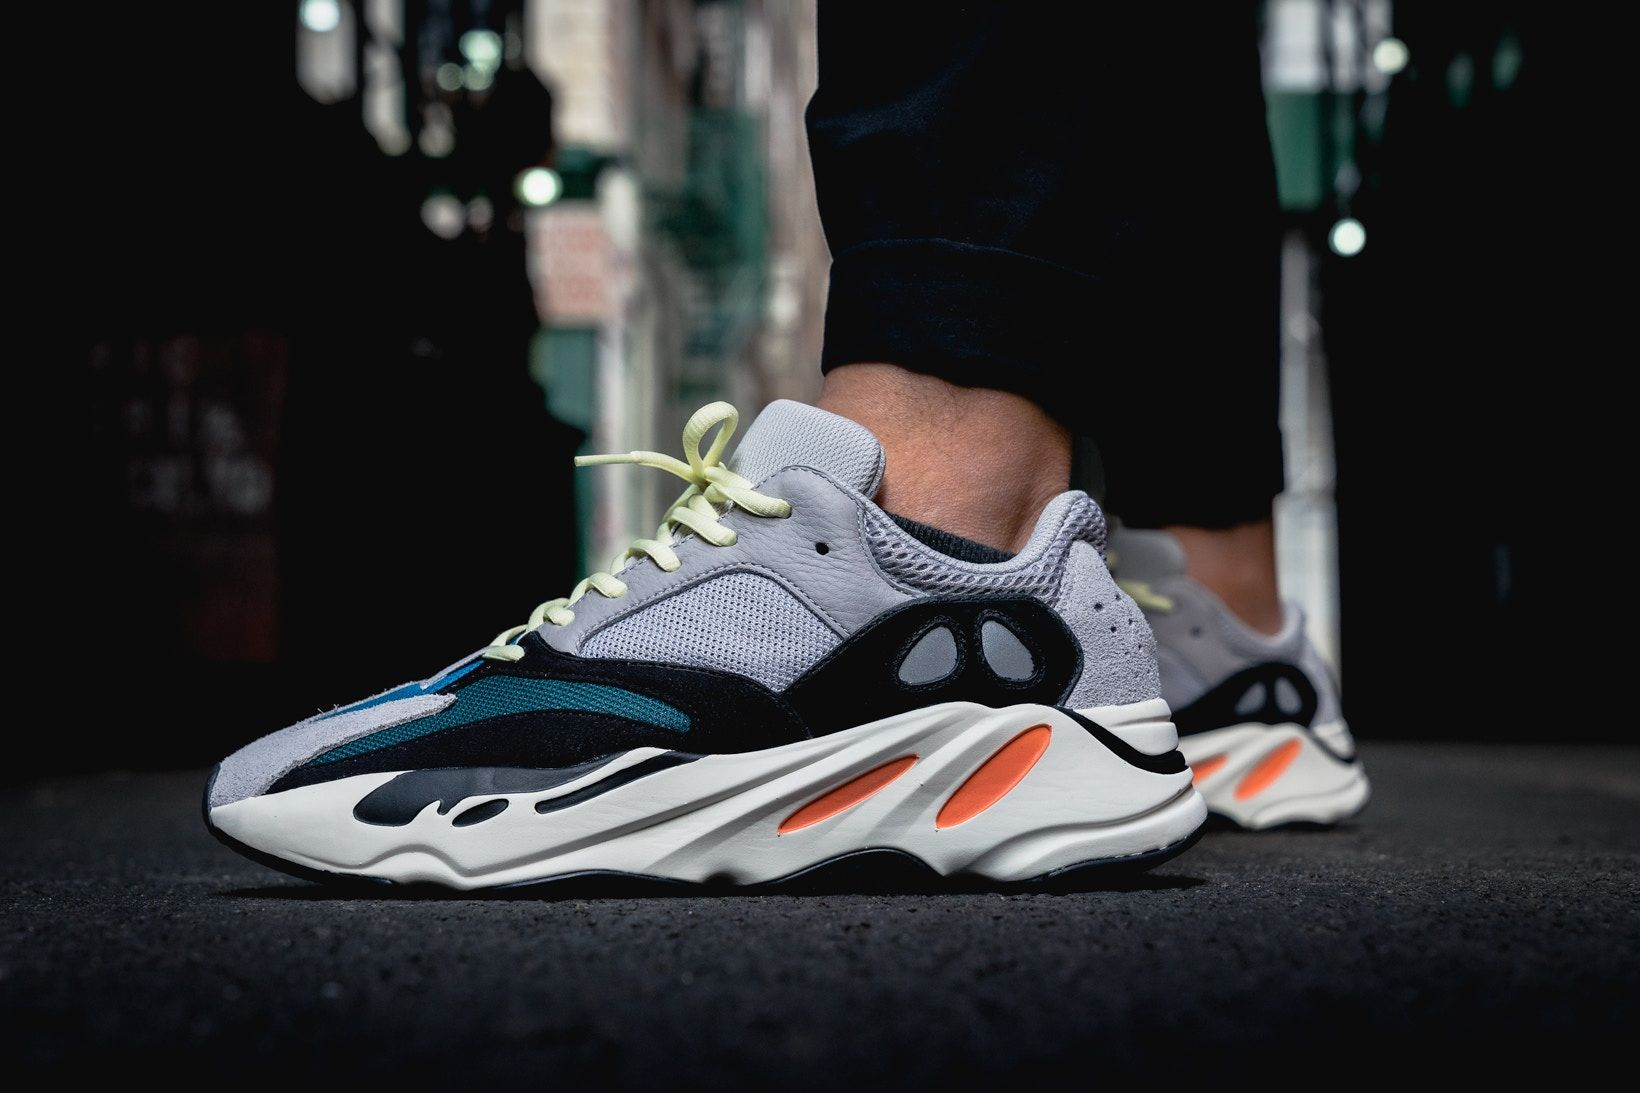 adidas yeezy boost 700 wave